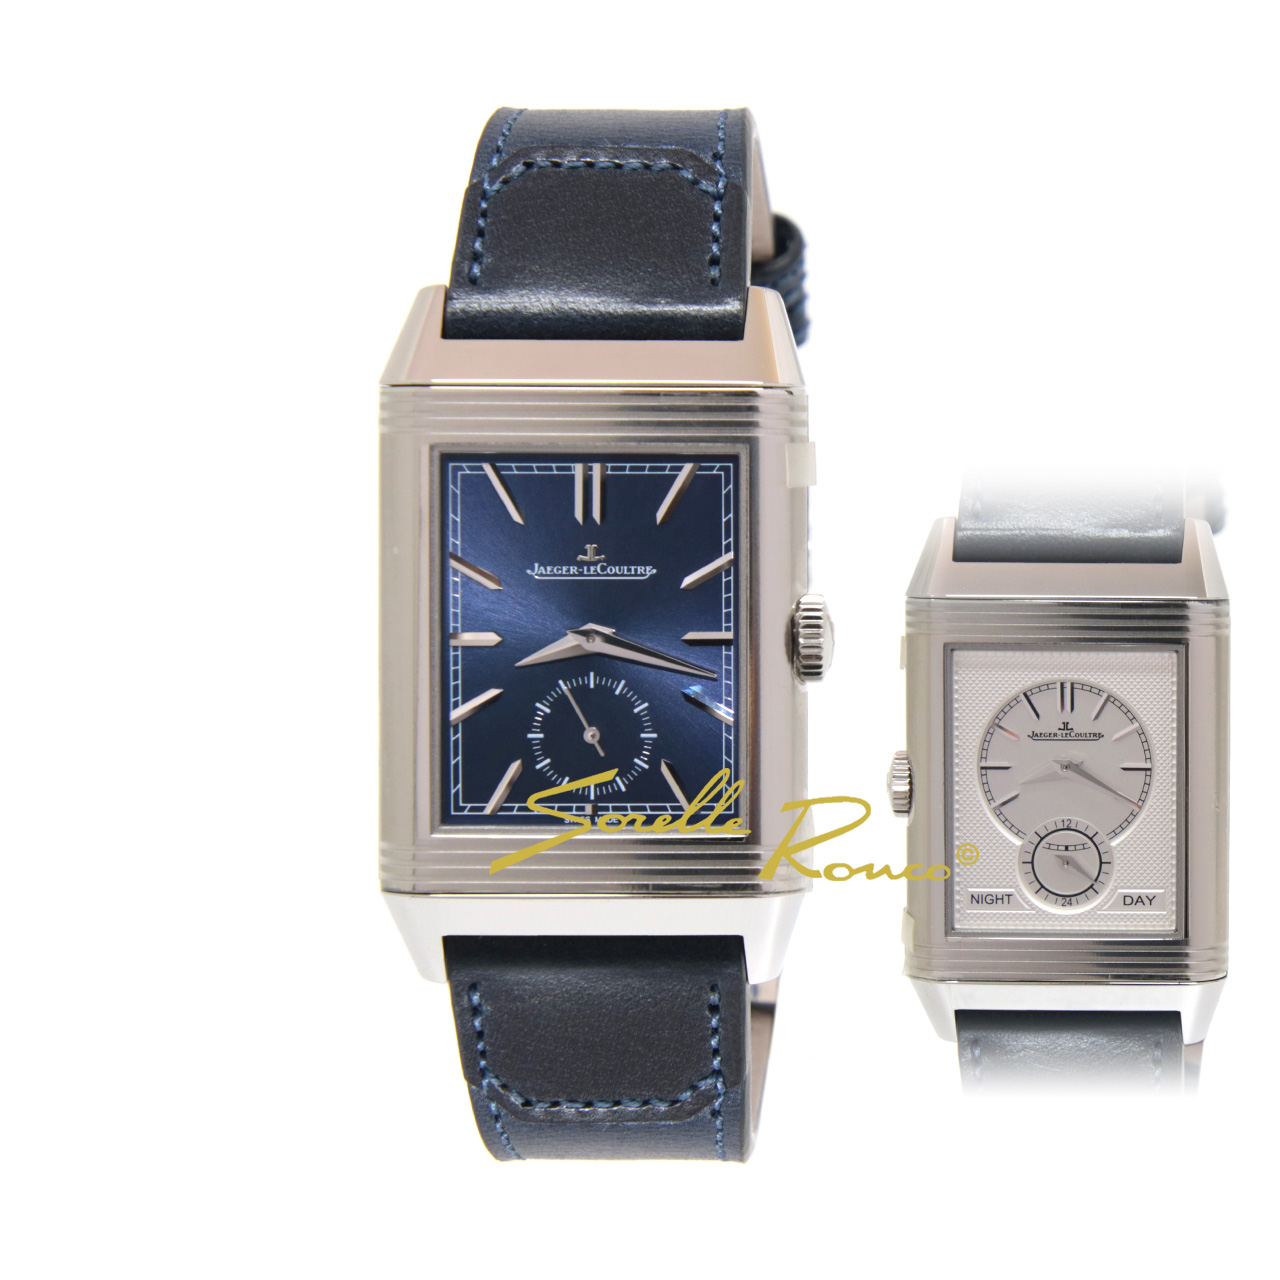 Reverso Tribute Duoface Small Second Carica Manuale